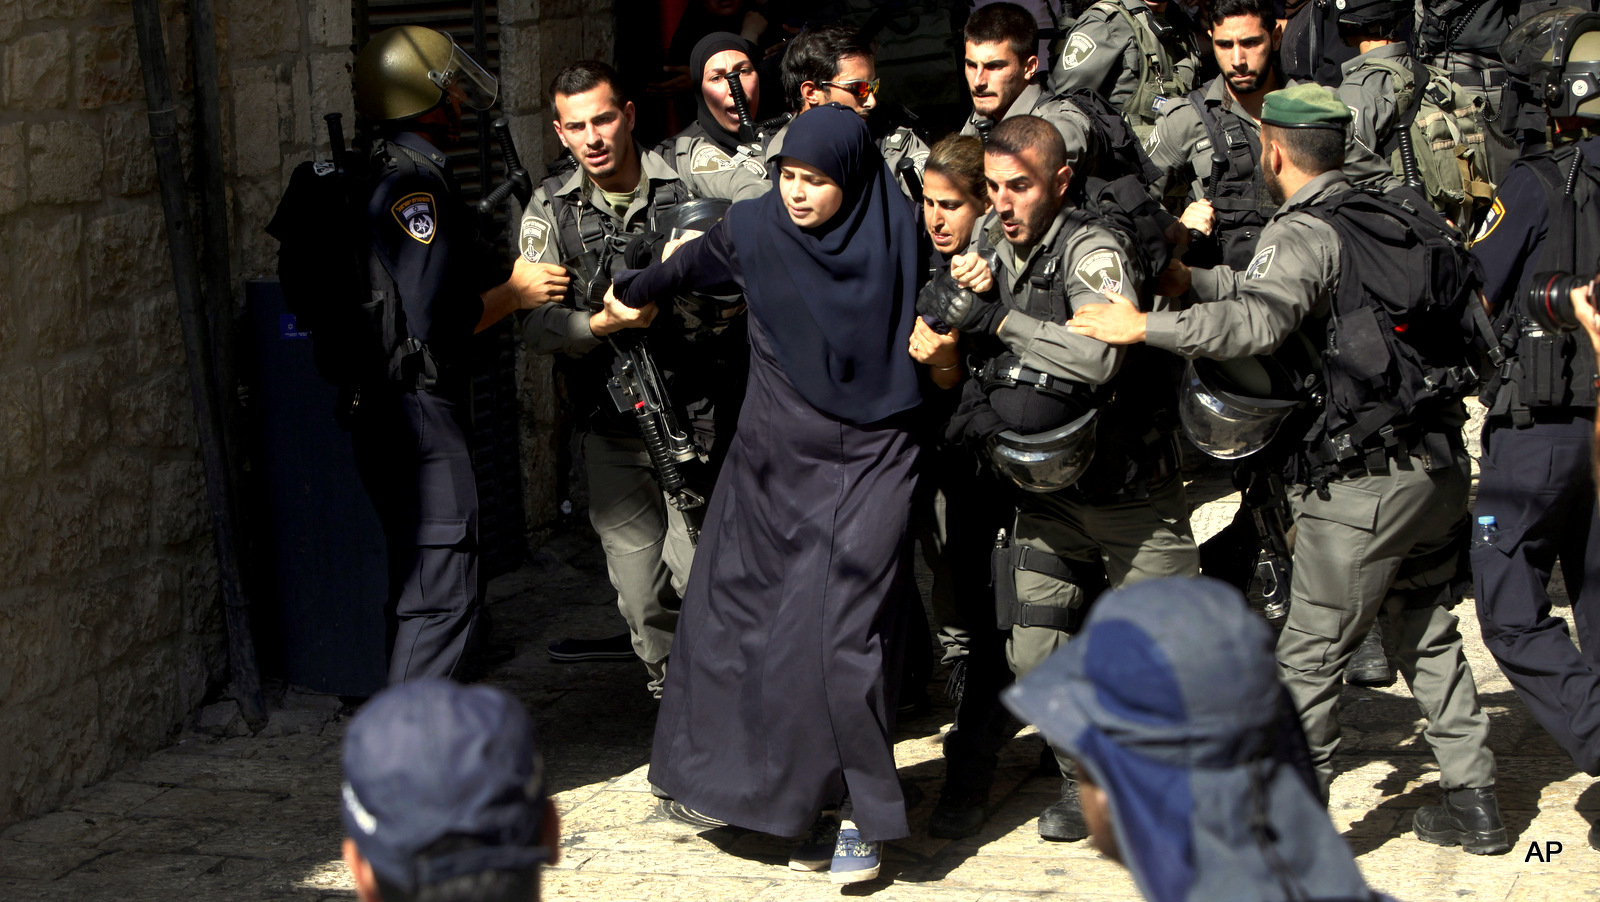 Israeli border police officers scuffle with Palestinian women in the Old City of Jerusalem on Sunday, July 26, 2015. Israeli police said they entered the al-Aqsa Mosque, the second-most holy site for Muslims, to